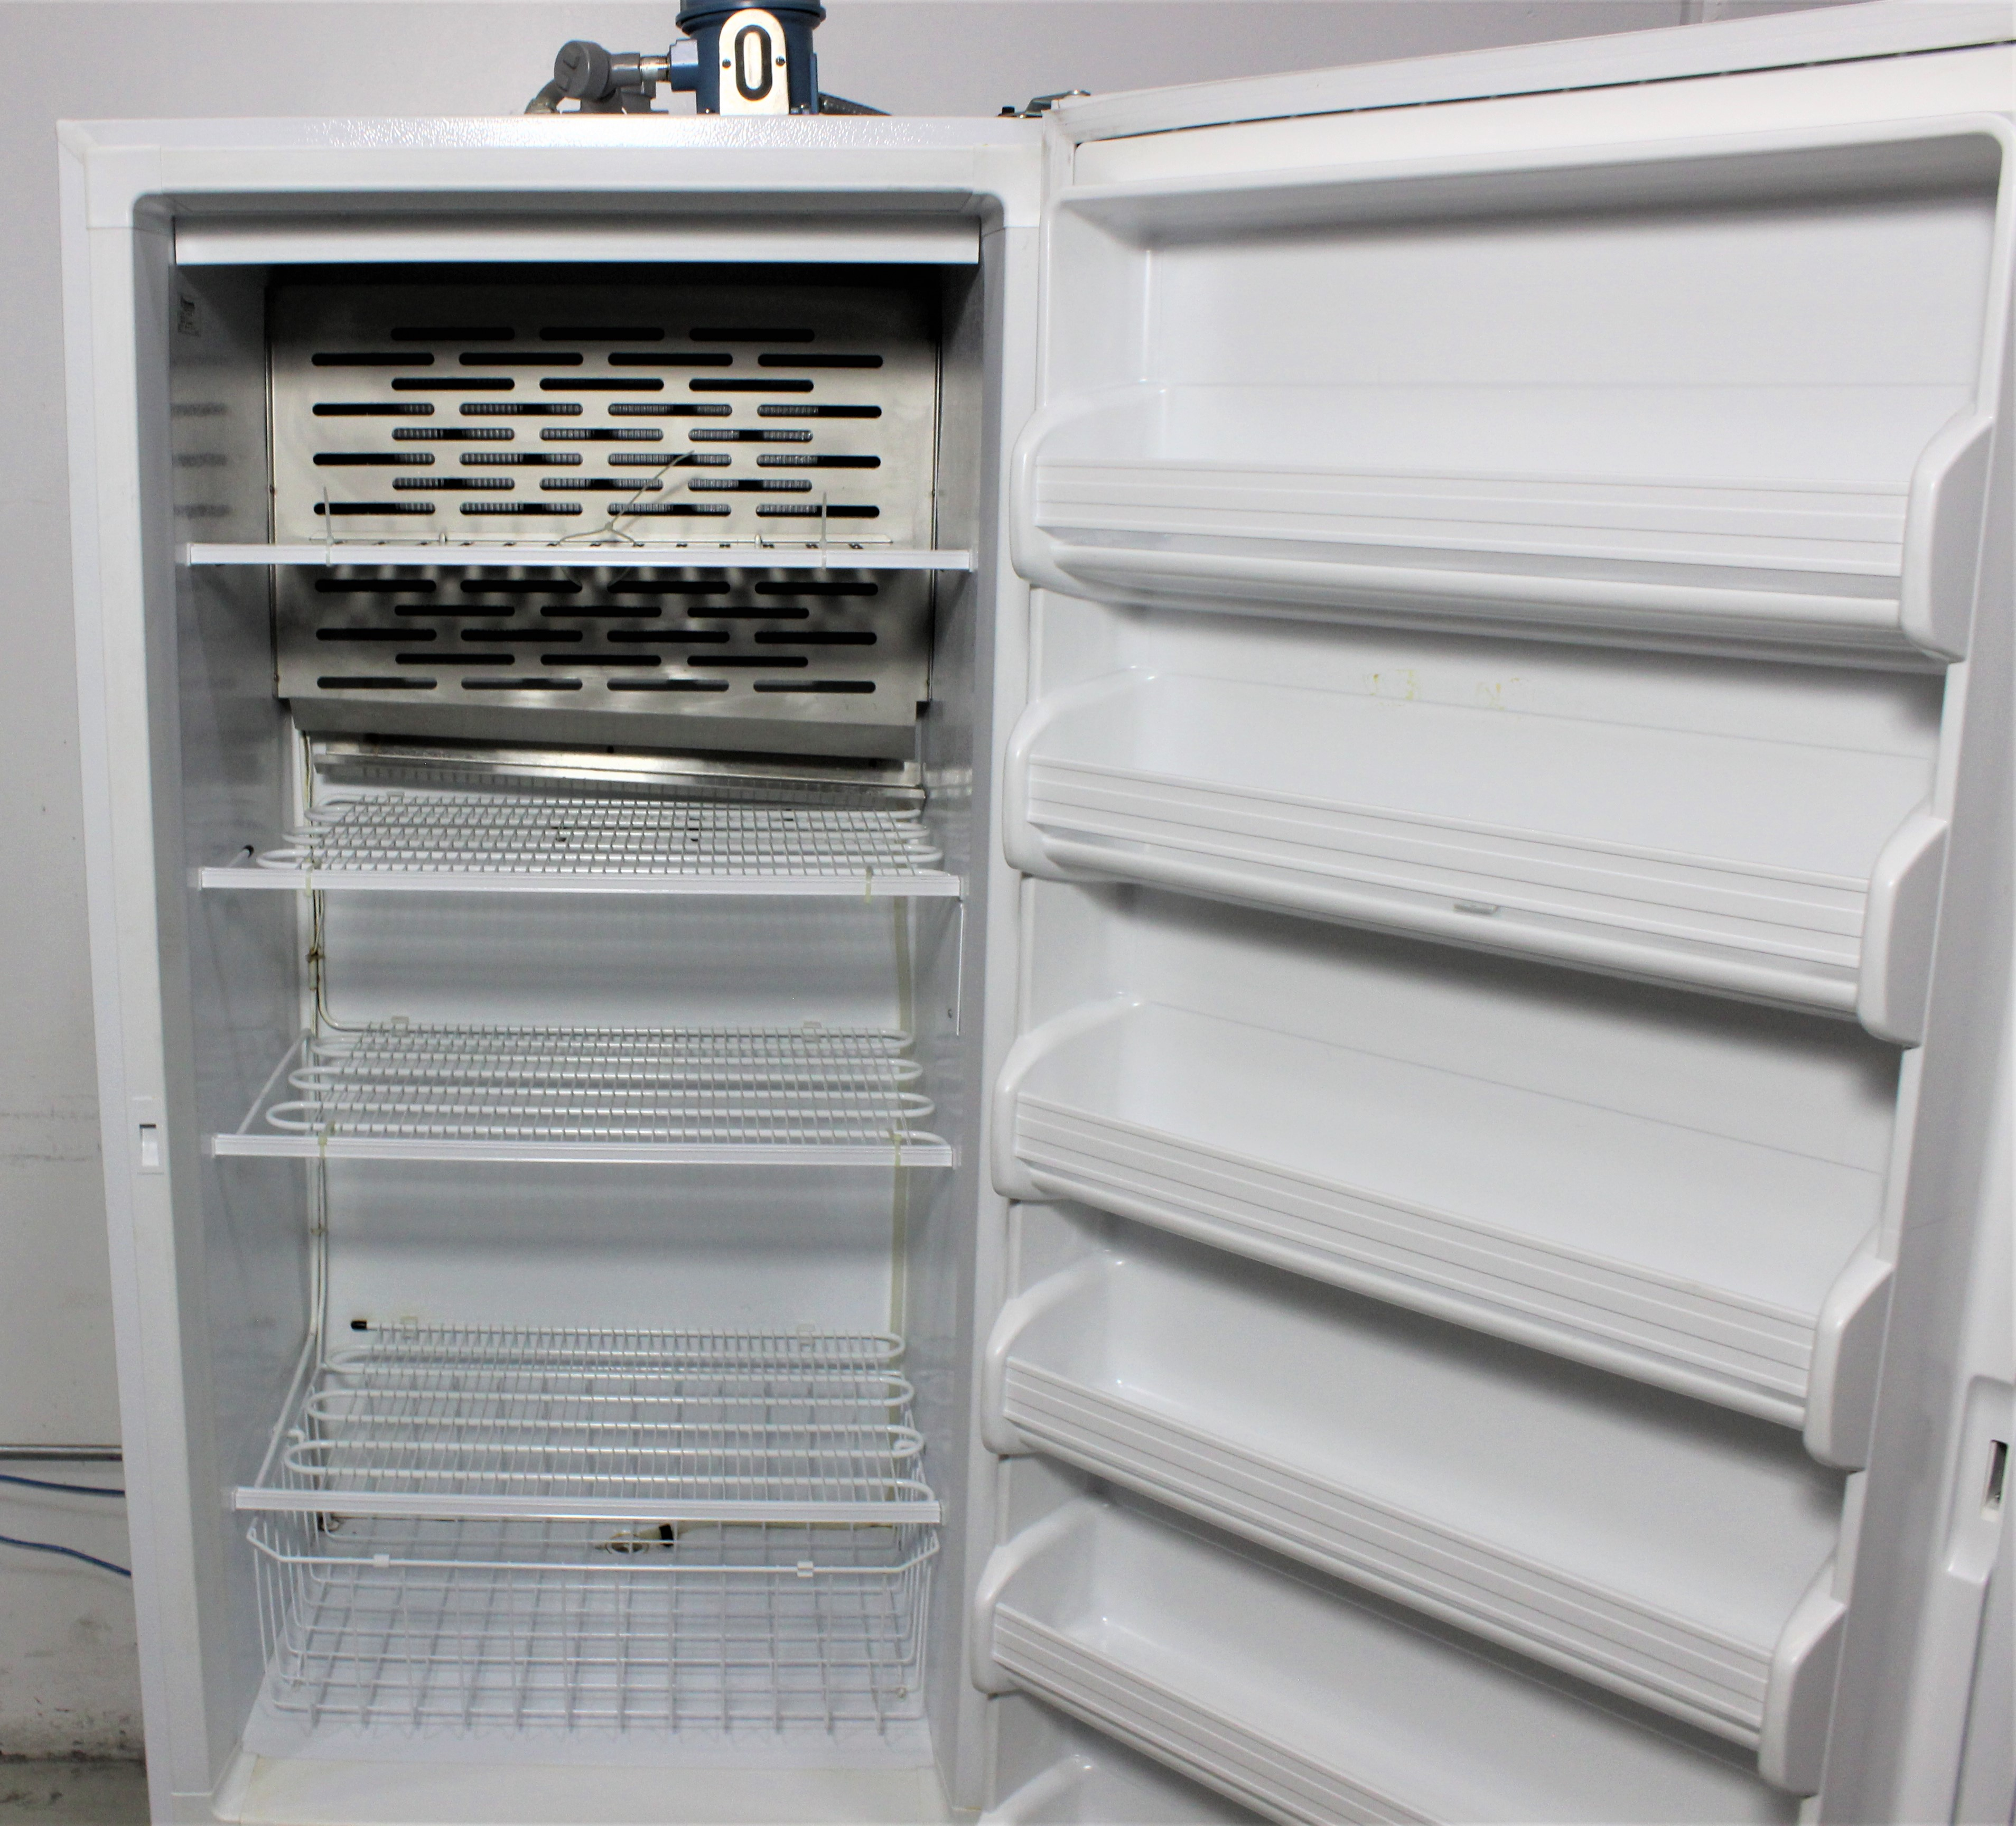 Image 20 Cu. Ft. FISHER SCIENTIFIC Isotemp Explosion-Proof Refrigerator 1587227